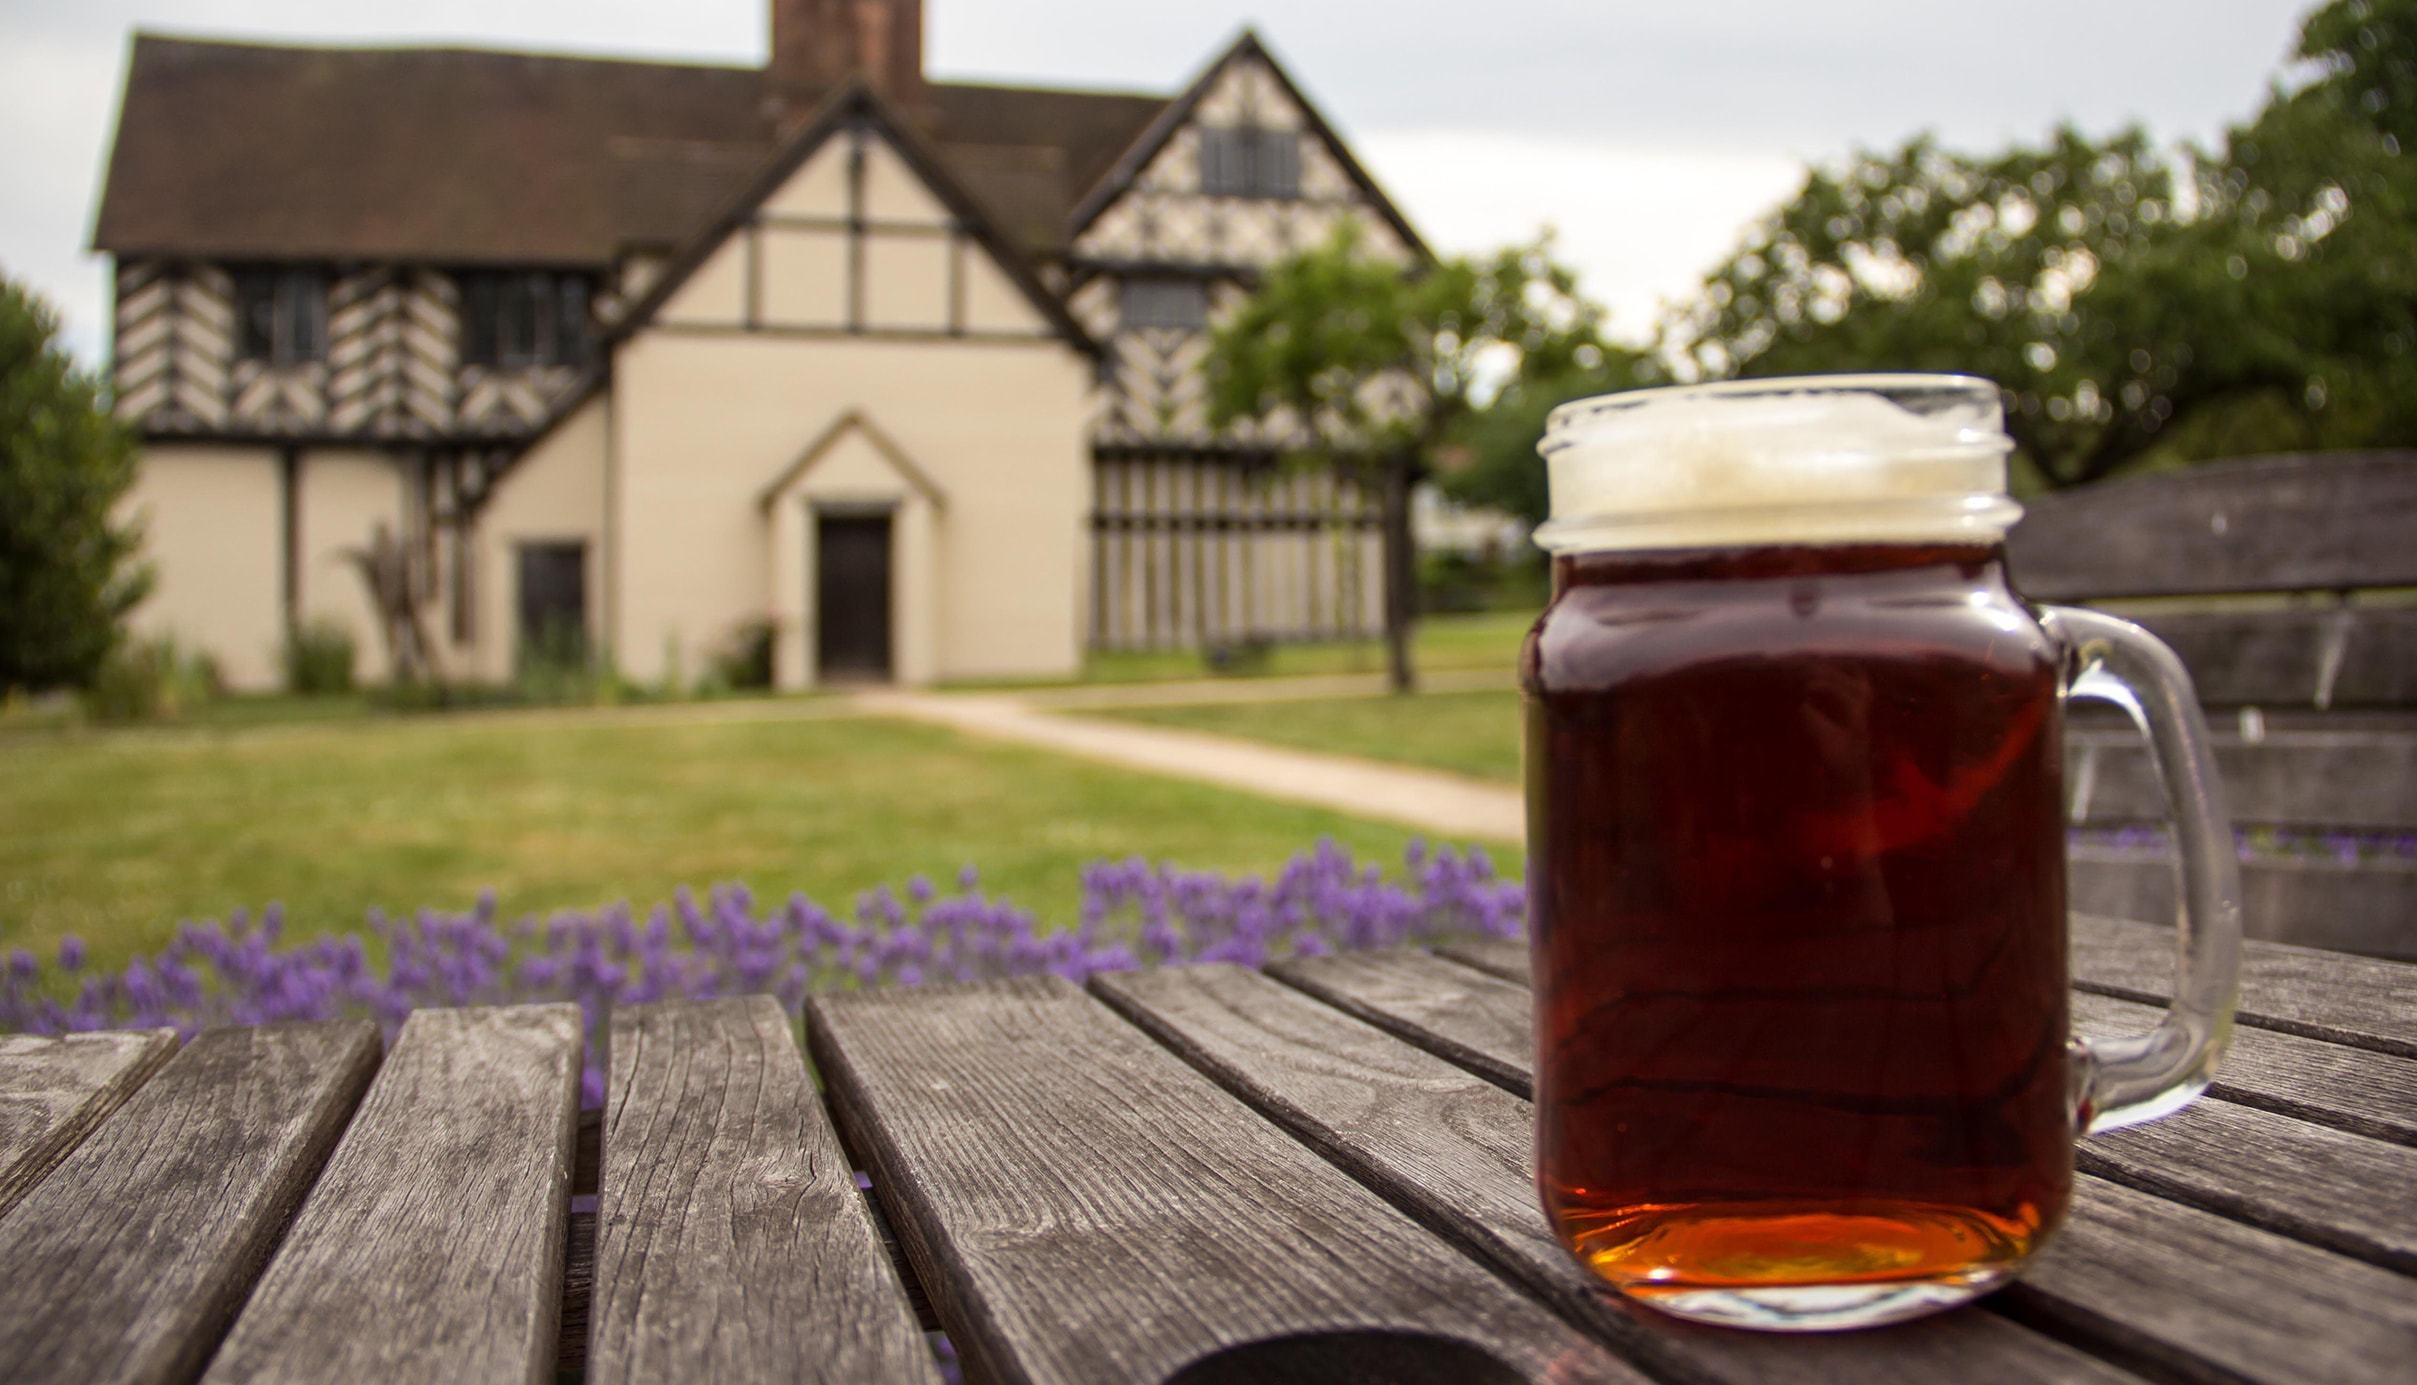 The Blakesley Hall Ale & Cider Festival 2018